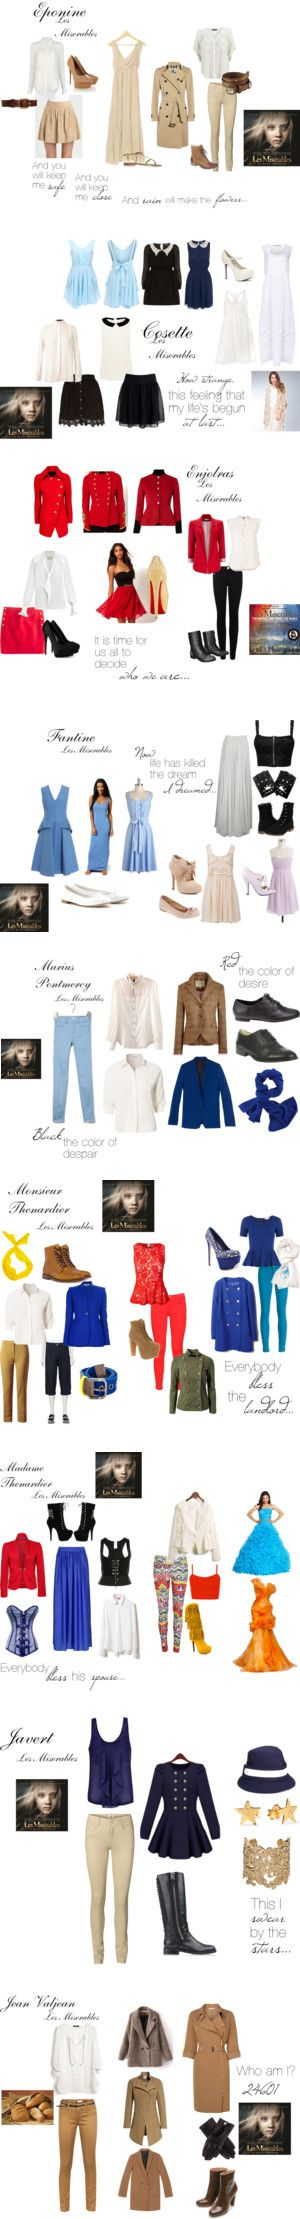 """Les Miserables Inspired Outfits"" by little-fall-of-rain on Polyvore. I want all of these"